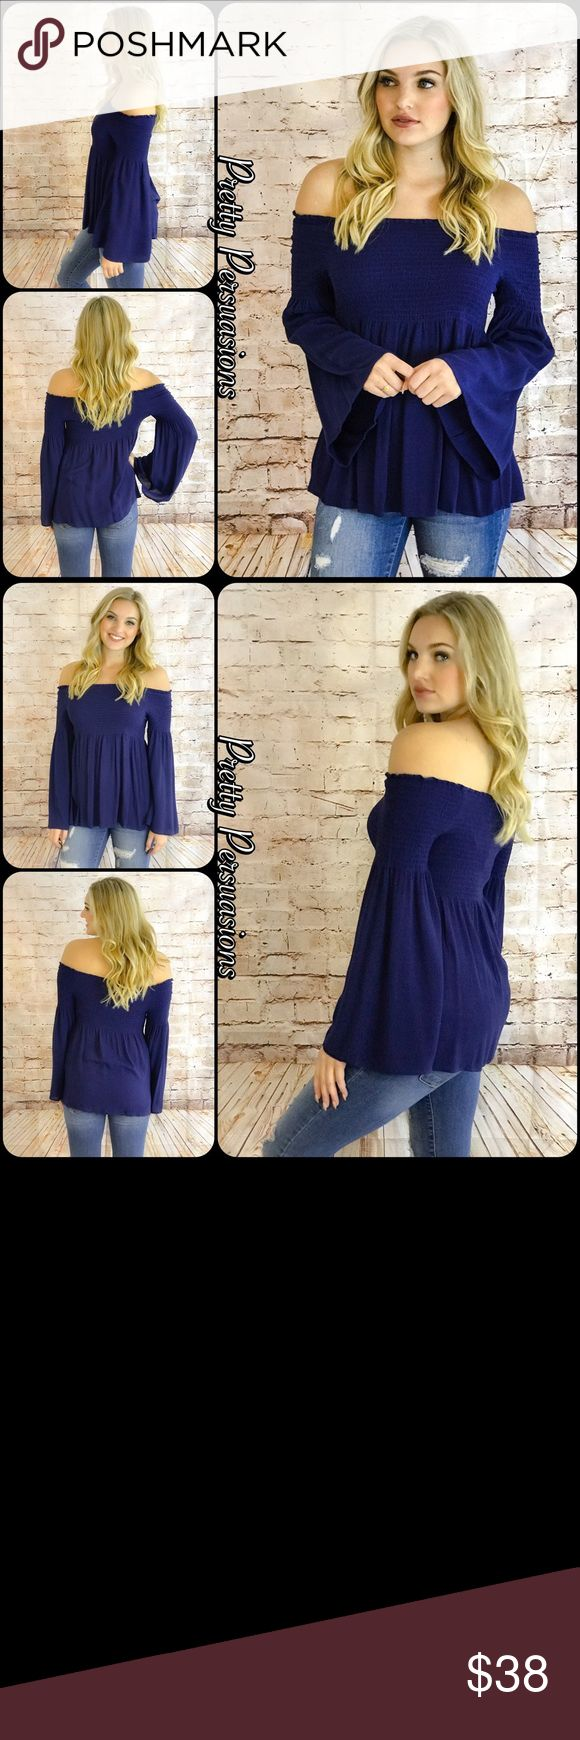 "NWT Navy Long Bell Sleeve Off Shoulder Top NWT Navy Long Bell Sleeve Smocked Off Shoulder Top  Available in S, M, L Measurements taken from a small Length: 15"" Bust: 26"" (Smocked;Has Stretch) Waist: 32"" ** Measurements taken unstretched **  * Also available in Black & Tan in separate listings  Rayon  Features  • smocked stretchy upper for accommodating stay in place fit • long bell sleeves • relaxed, easy fit • soft, breathable material   Bundle discounts available  No pp or trades  Item #…"